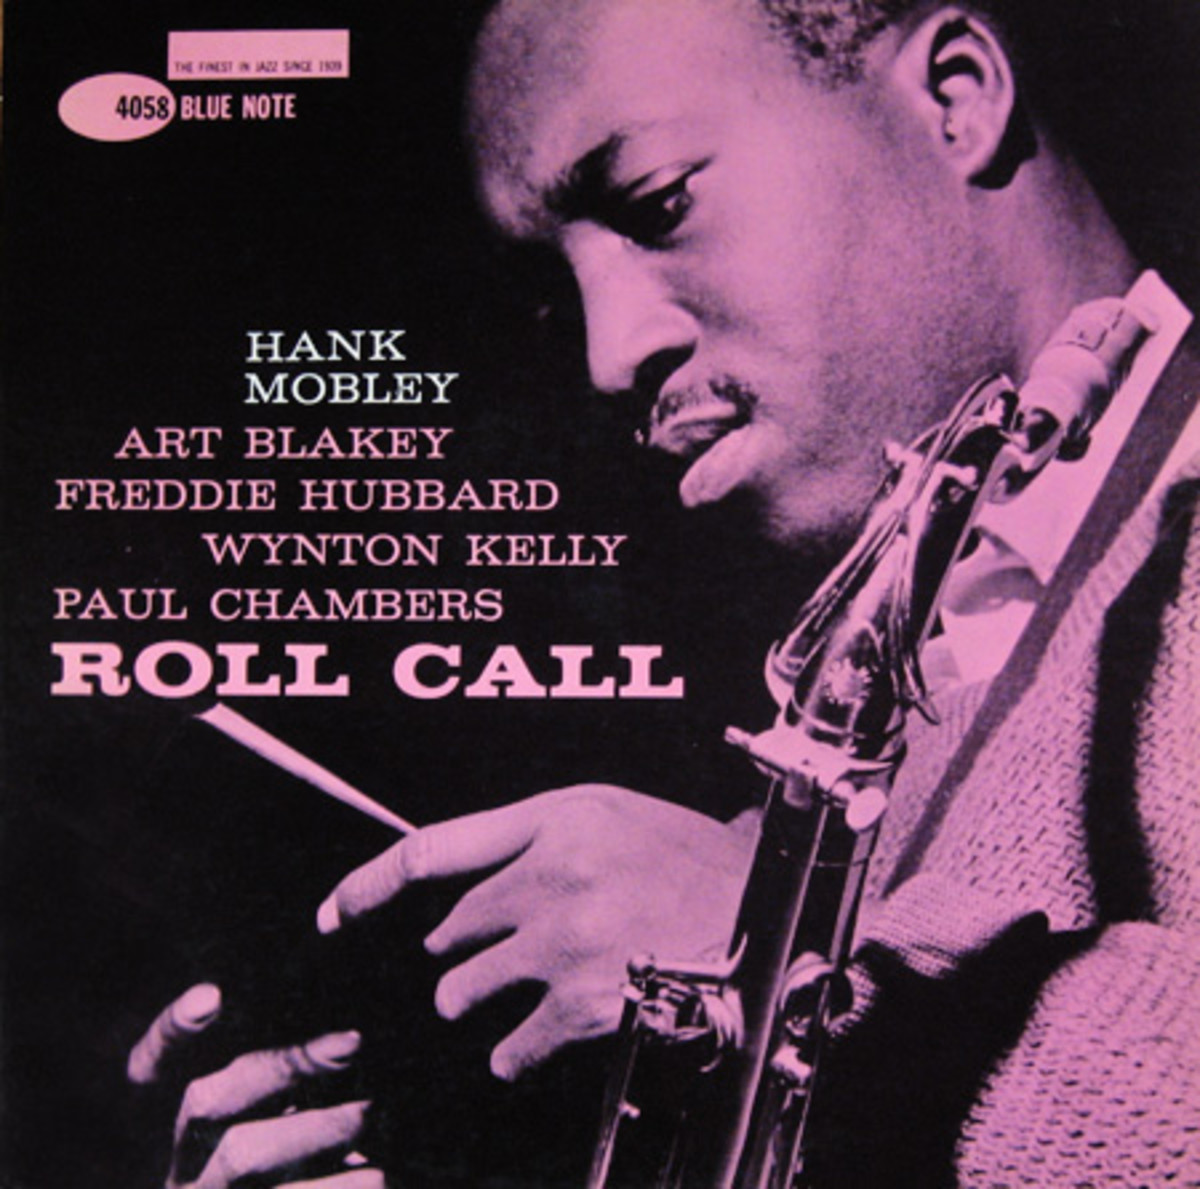 """Hank Mobley """"Roll Call"""" Blue Note Records 4058 12"""" LP Vinyl Record  (1961) Album Cover Design by Reid Miles   Photo by  Francis Wolf"""